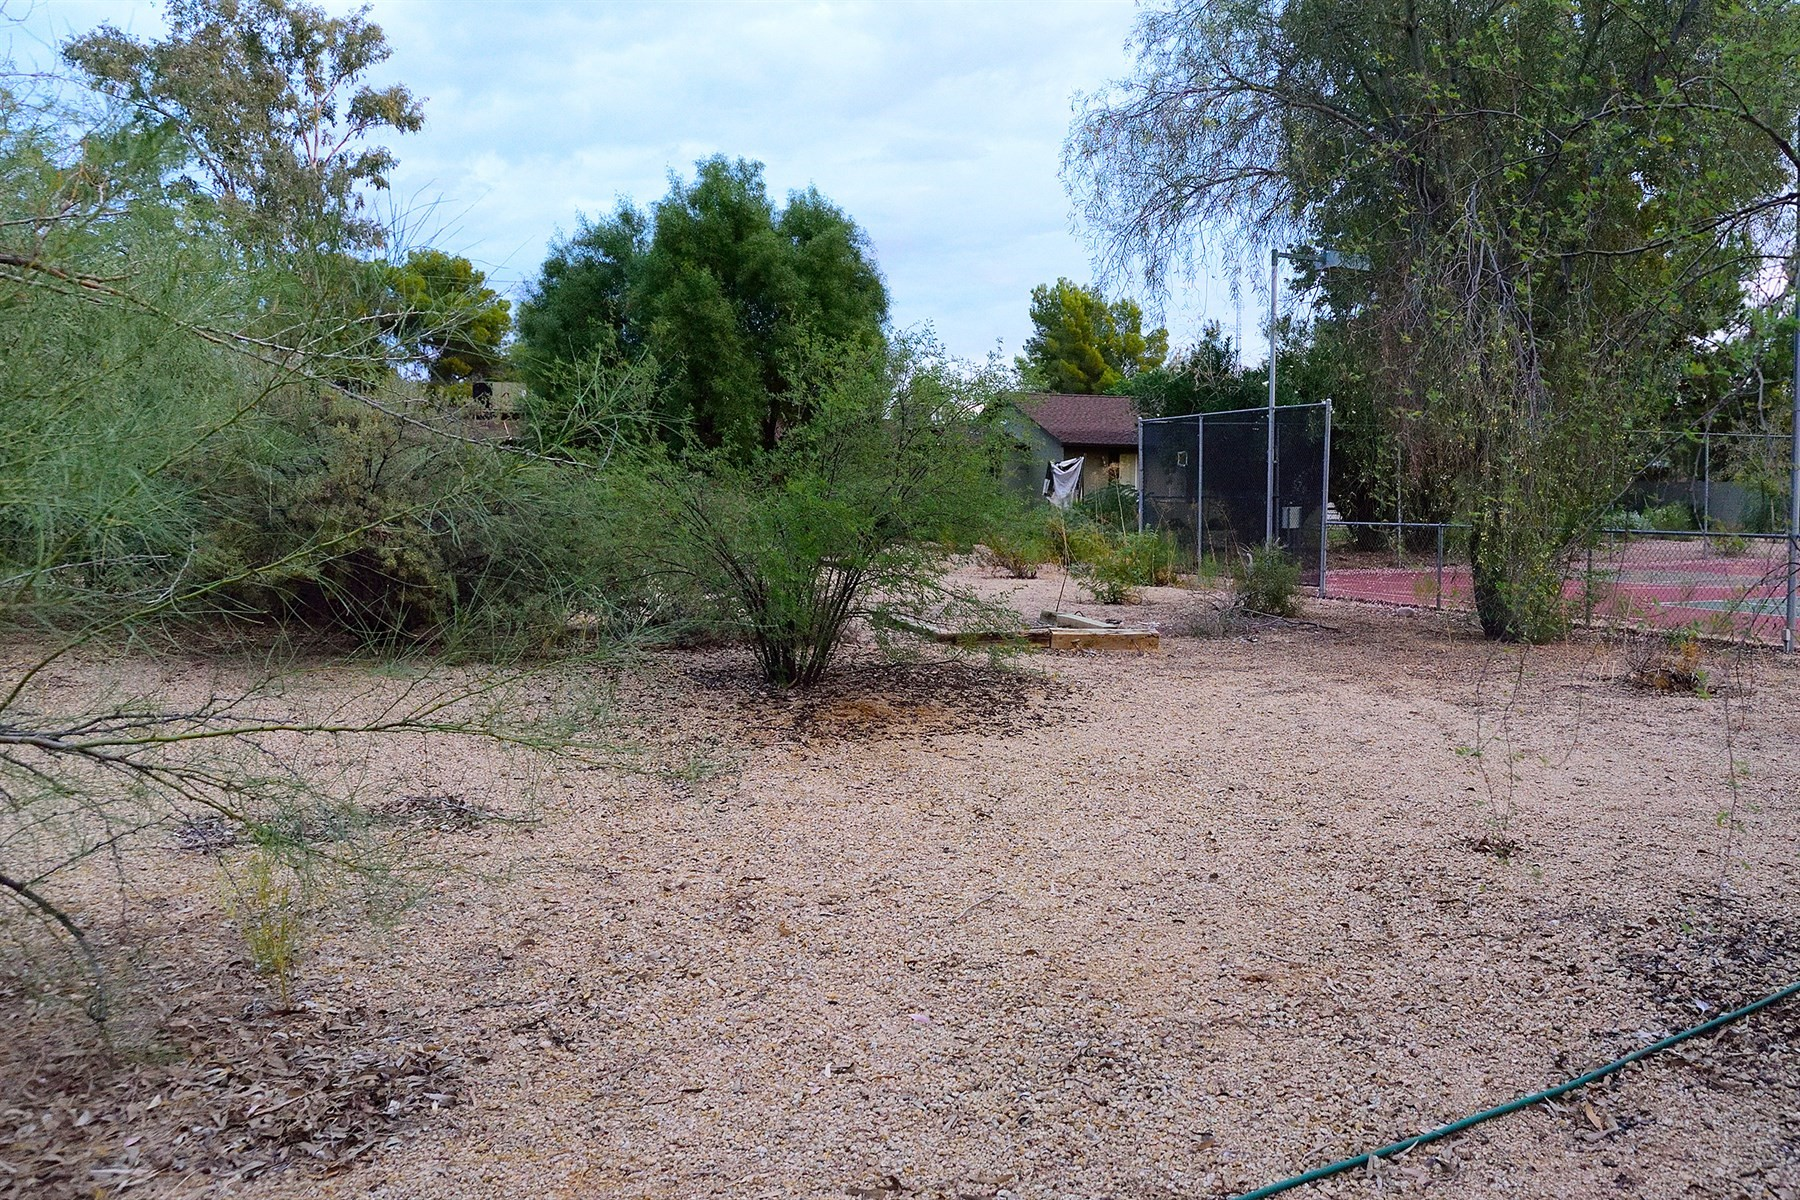 Additional photo for property listing at Immaculate home in Paradise Valley Ranchos 13613 N 76th St Scottsdale, Arizona 85260 United States